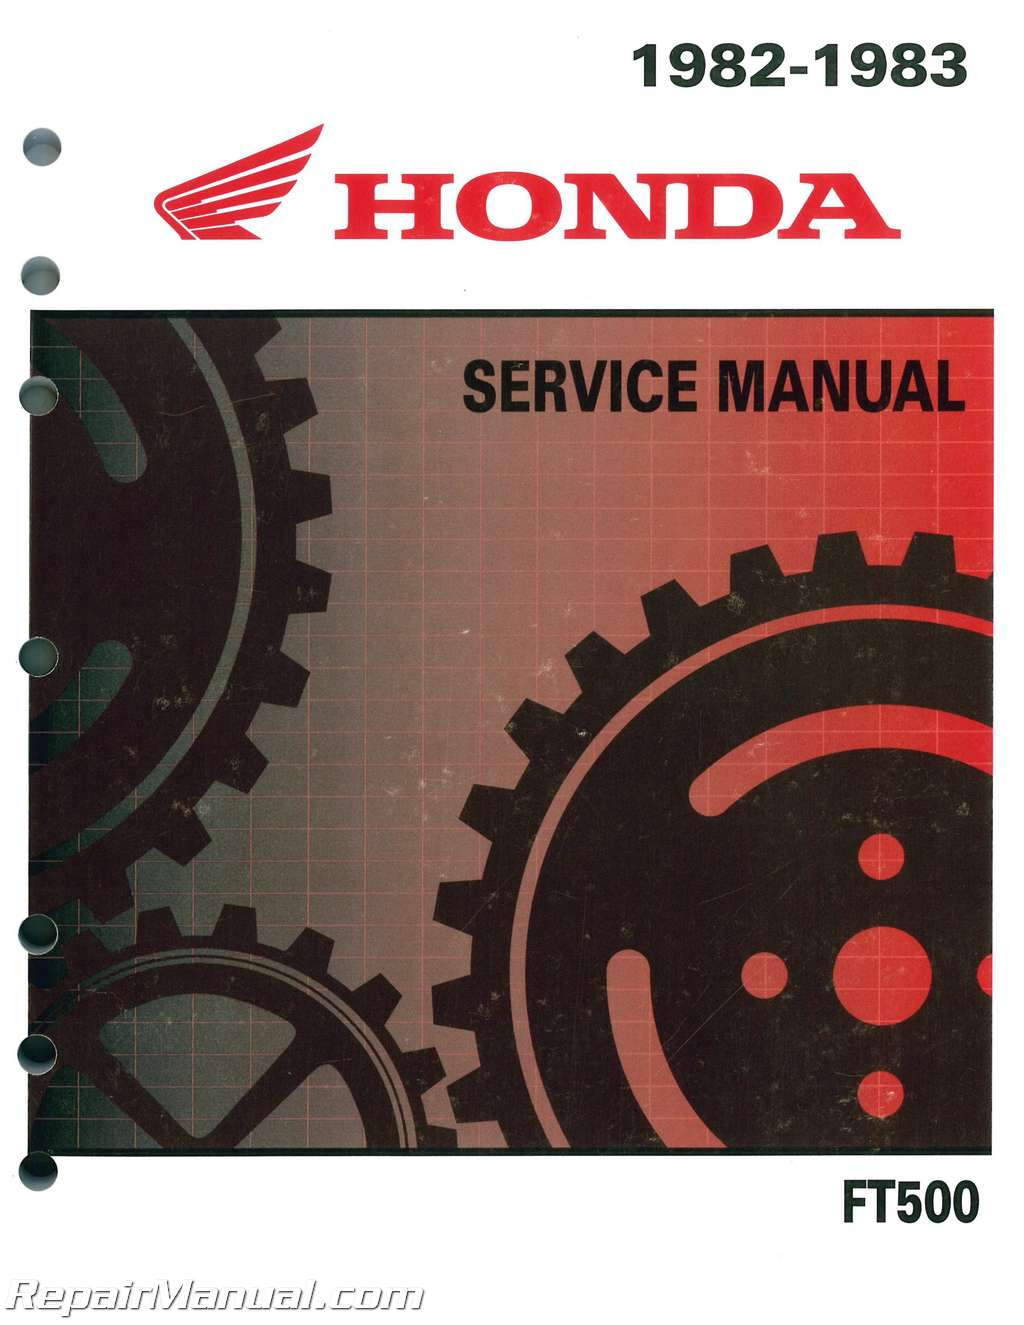 1982 1983 Honda FT500 ASCOT Motorcycle Service Manual_001 custom made wiring harnesses page 2 cb350 ideas pinterest cat 416 wiring diagram at panicattacktreatment.co